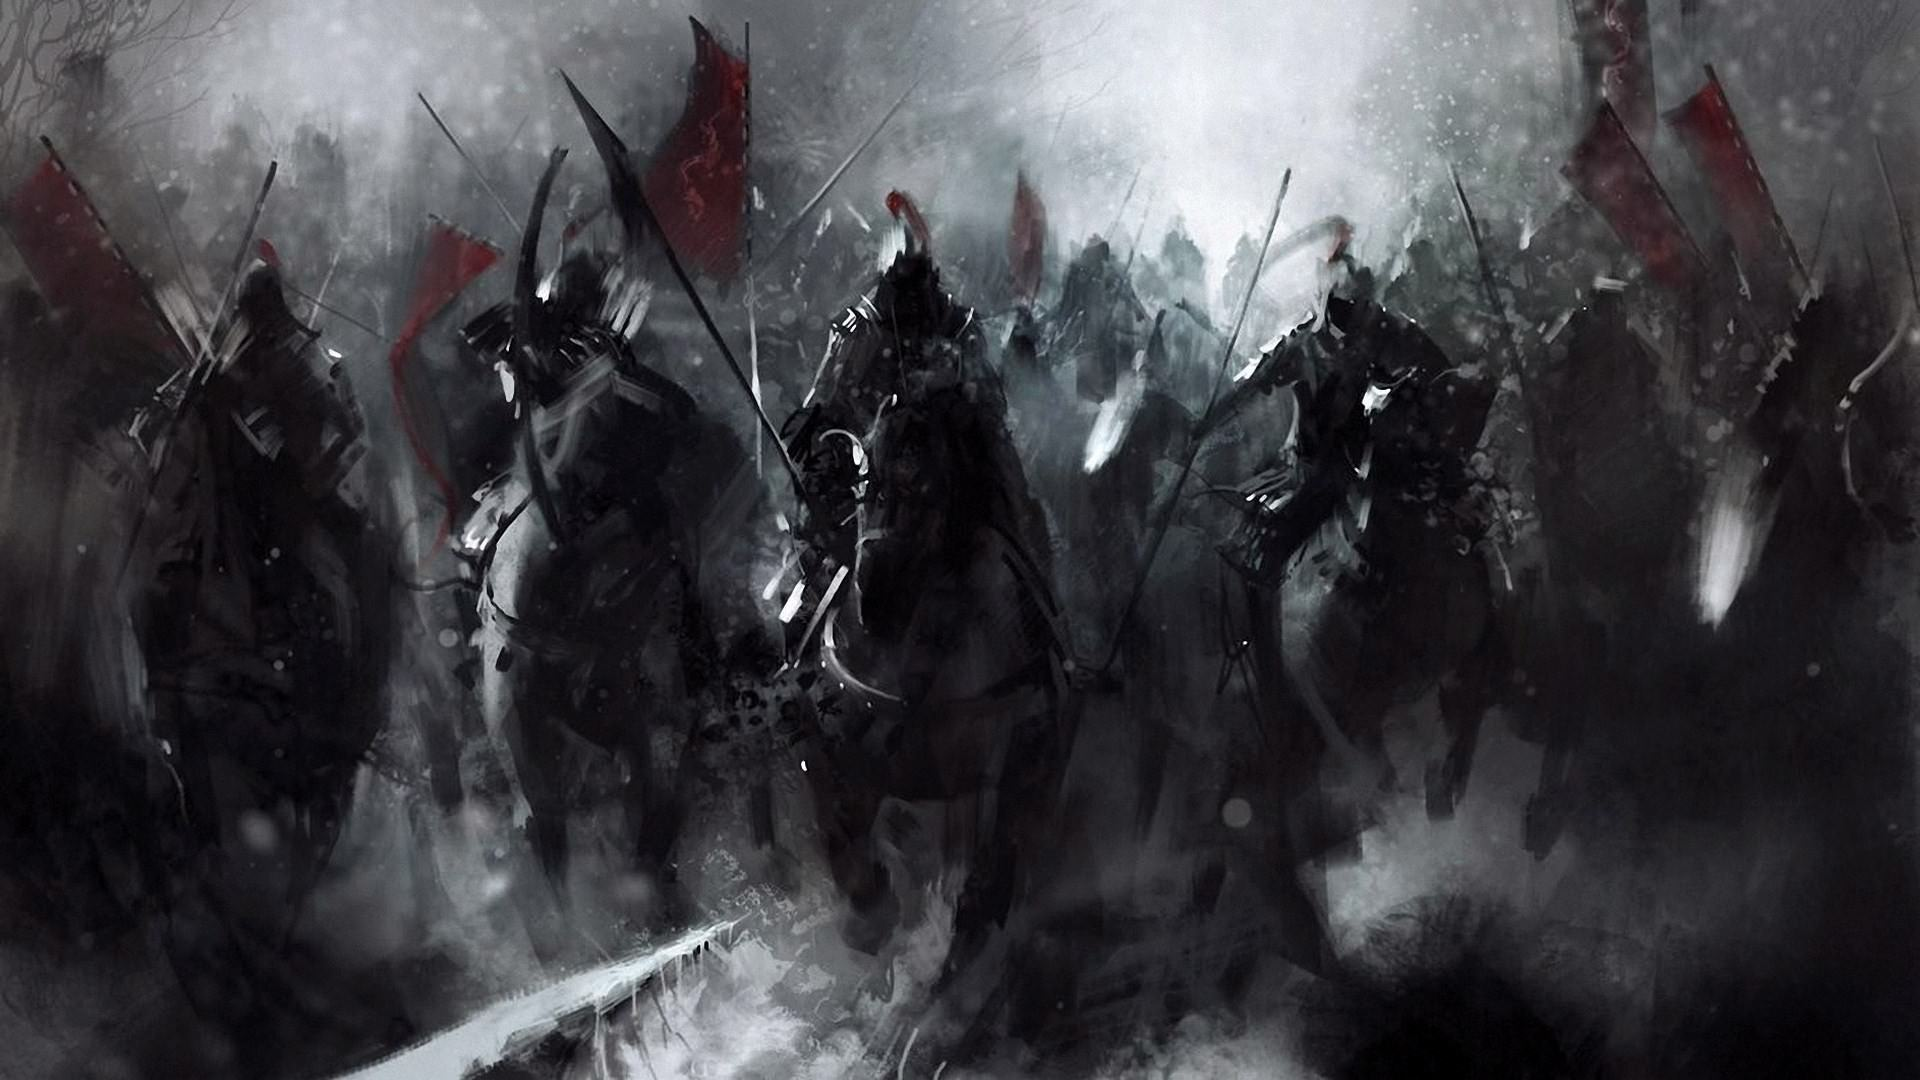 Dark Fantasy Horsemen Wallpaper   DigitalArtio 1920x1080